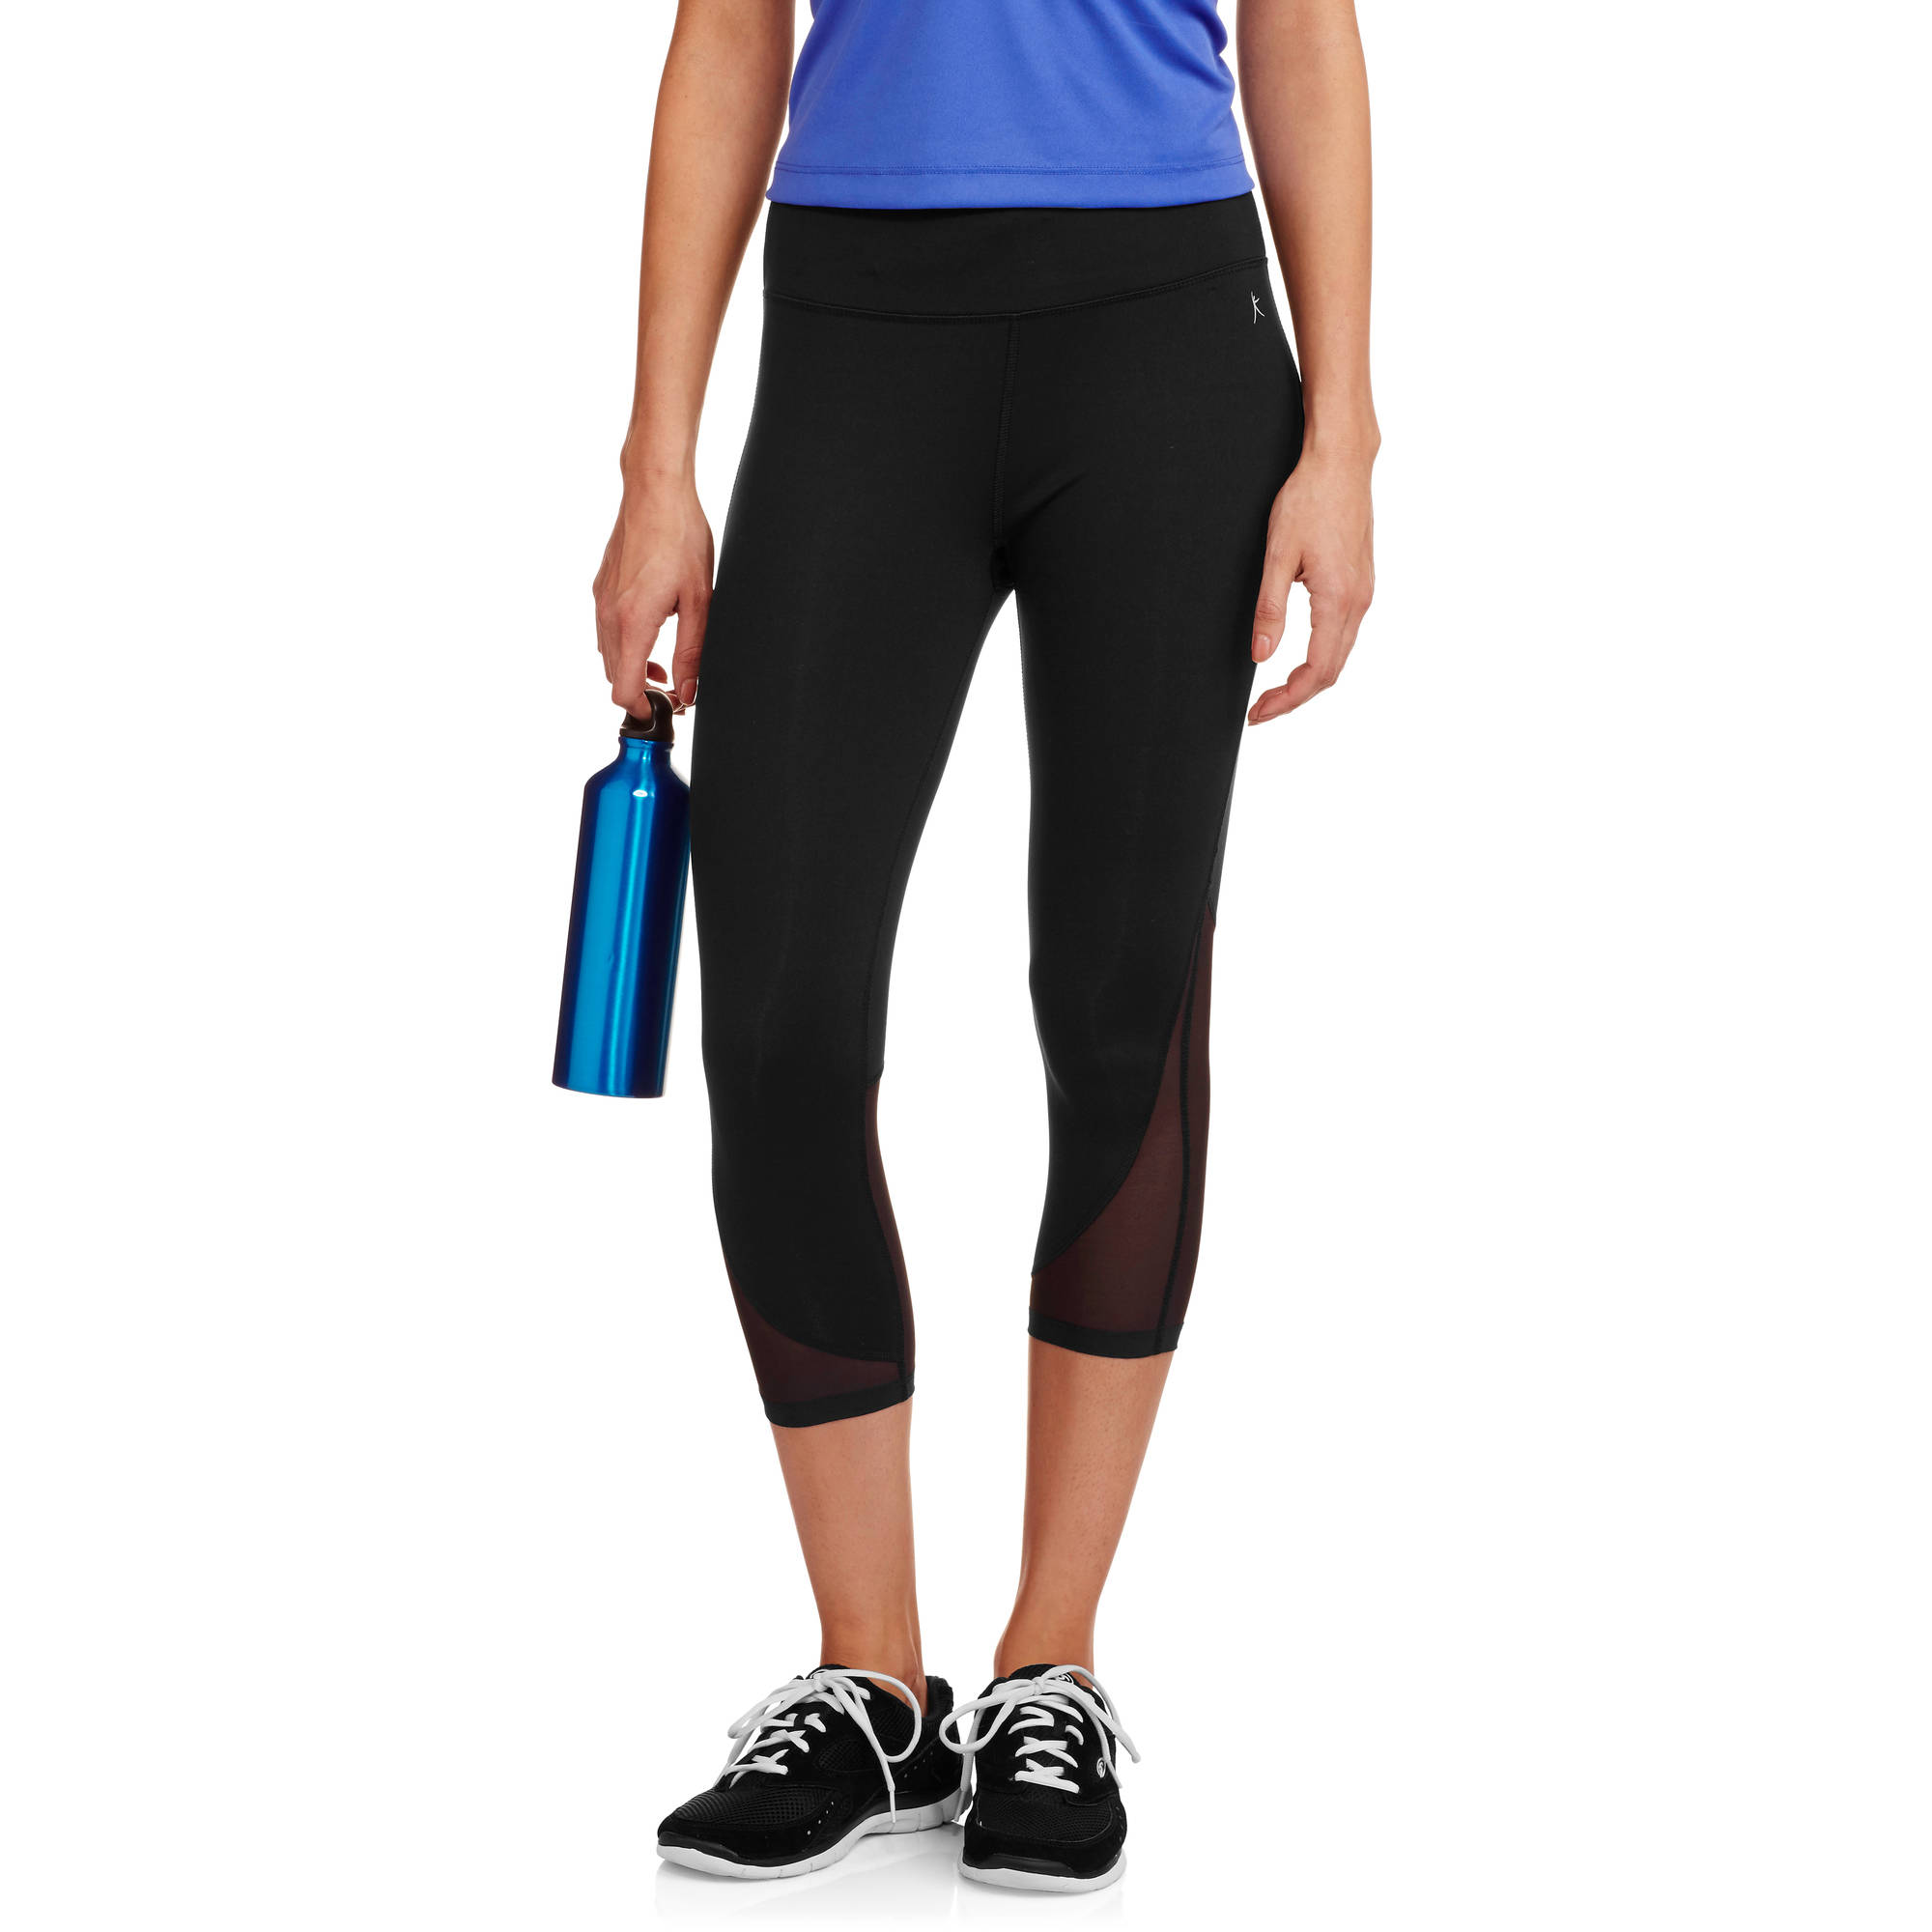 Women's Premium Nylon Performance Capri Tight with Mesh Hem